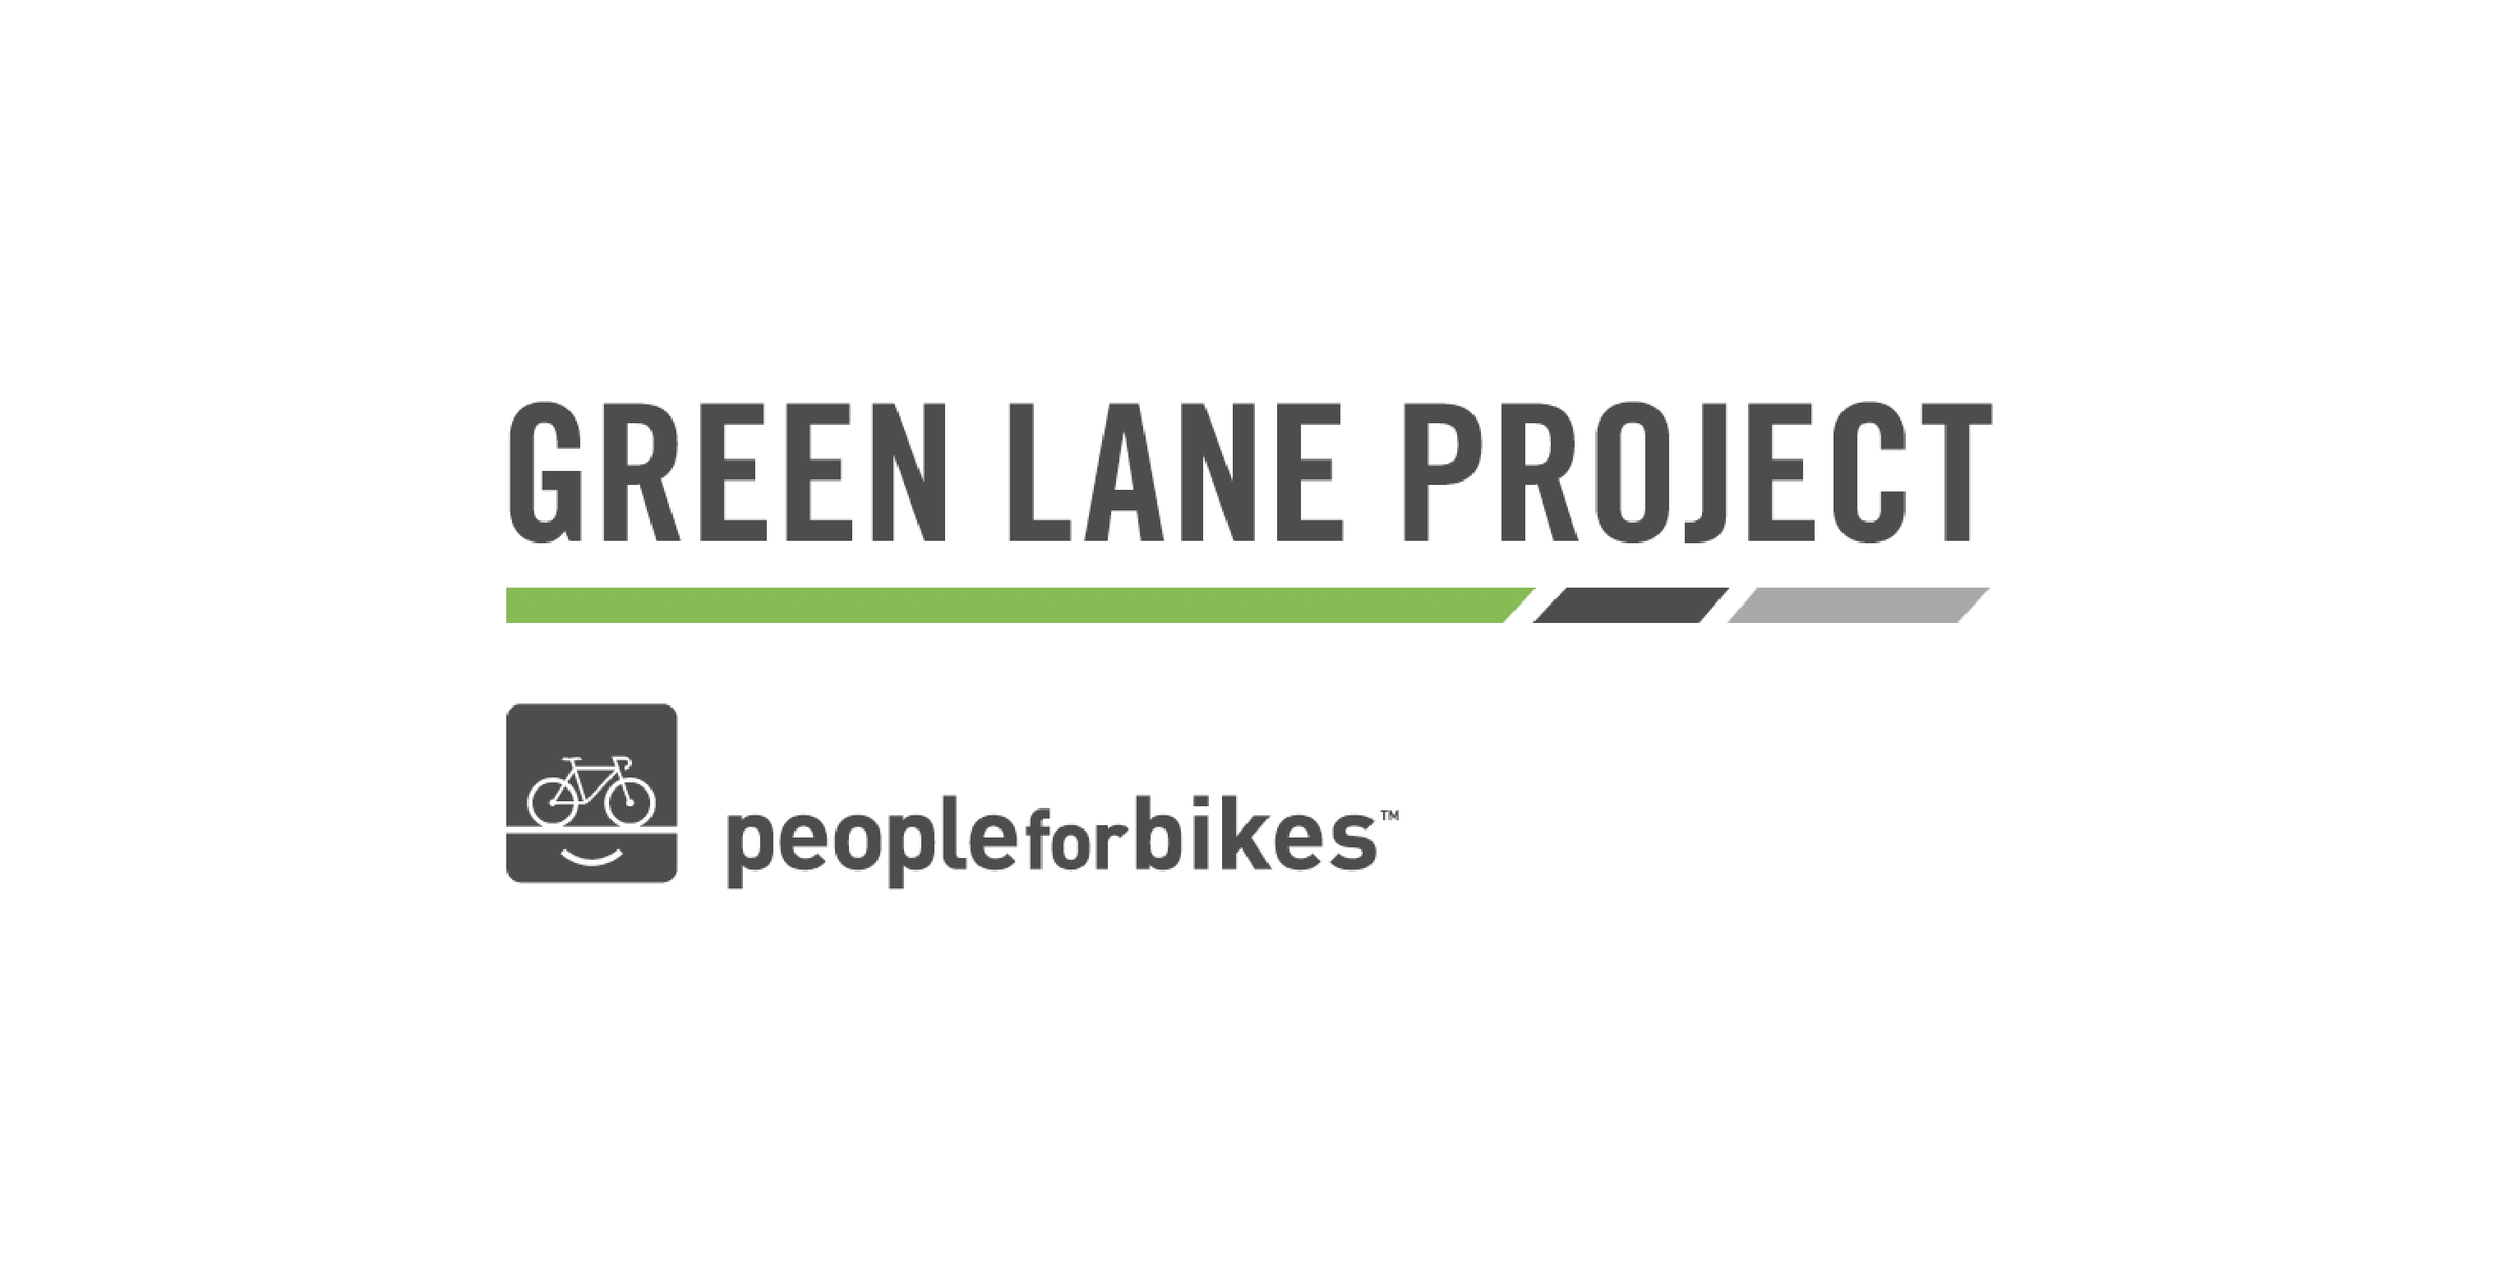 green lane project-01.png